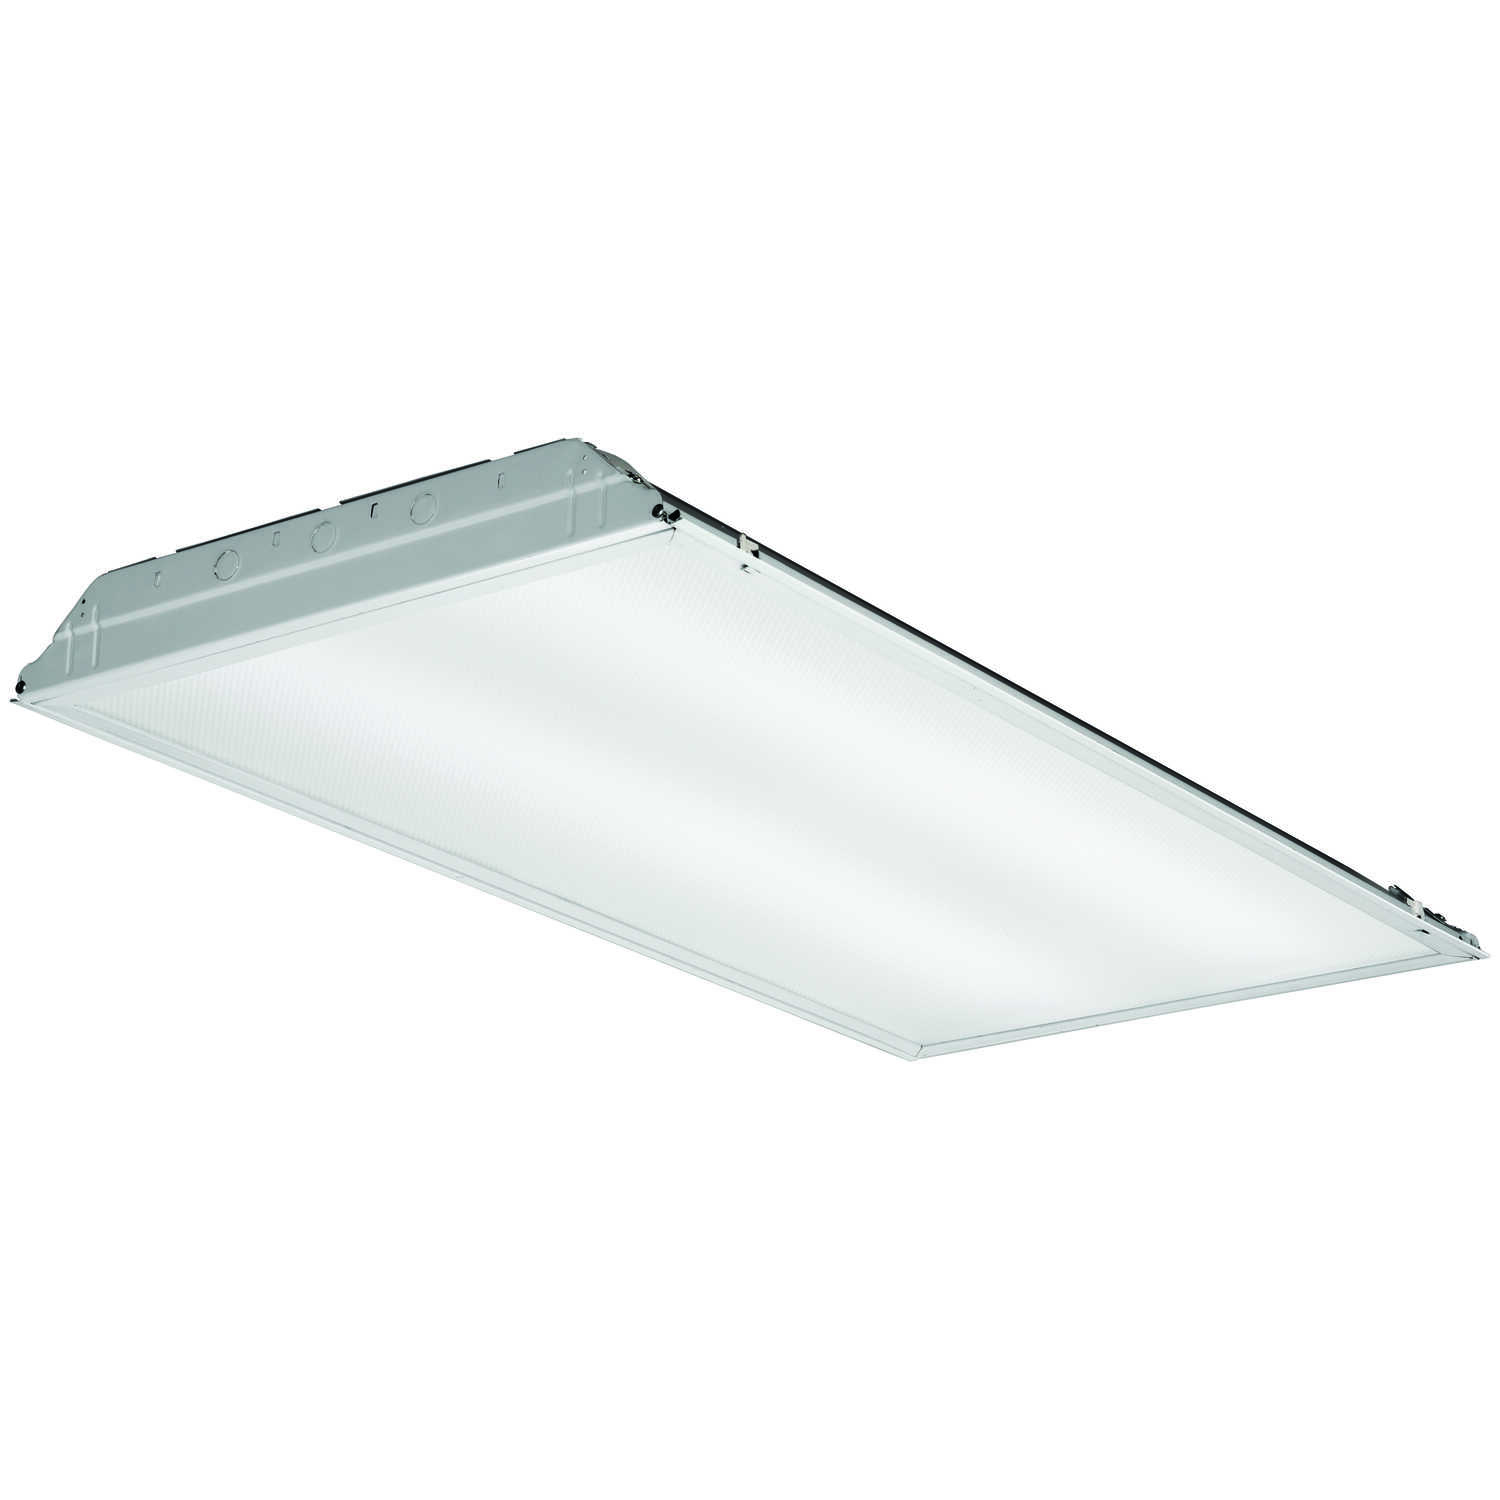 Lithonia Lighting  39 watts LED Troffer Fixture  3-1/4 in. 24 in. 48 in.